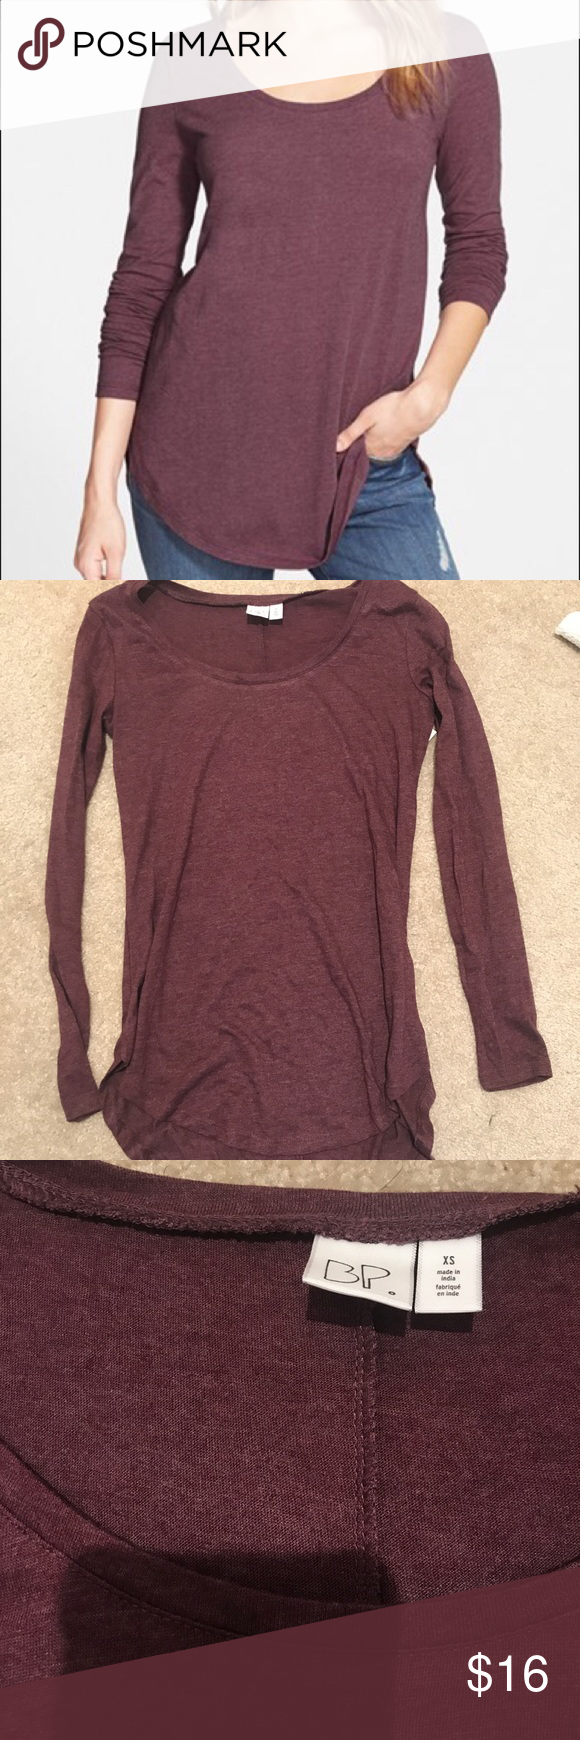 Burgundy Top Size XS, new with tag bp Tops Tees - Long Sleeve